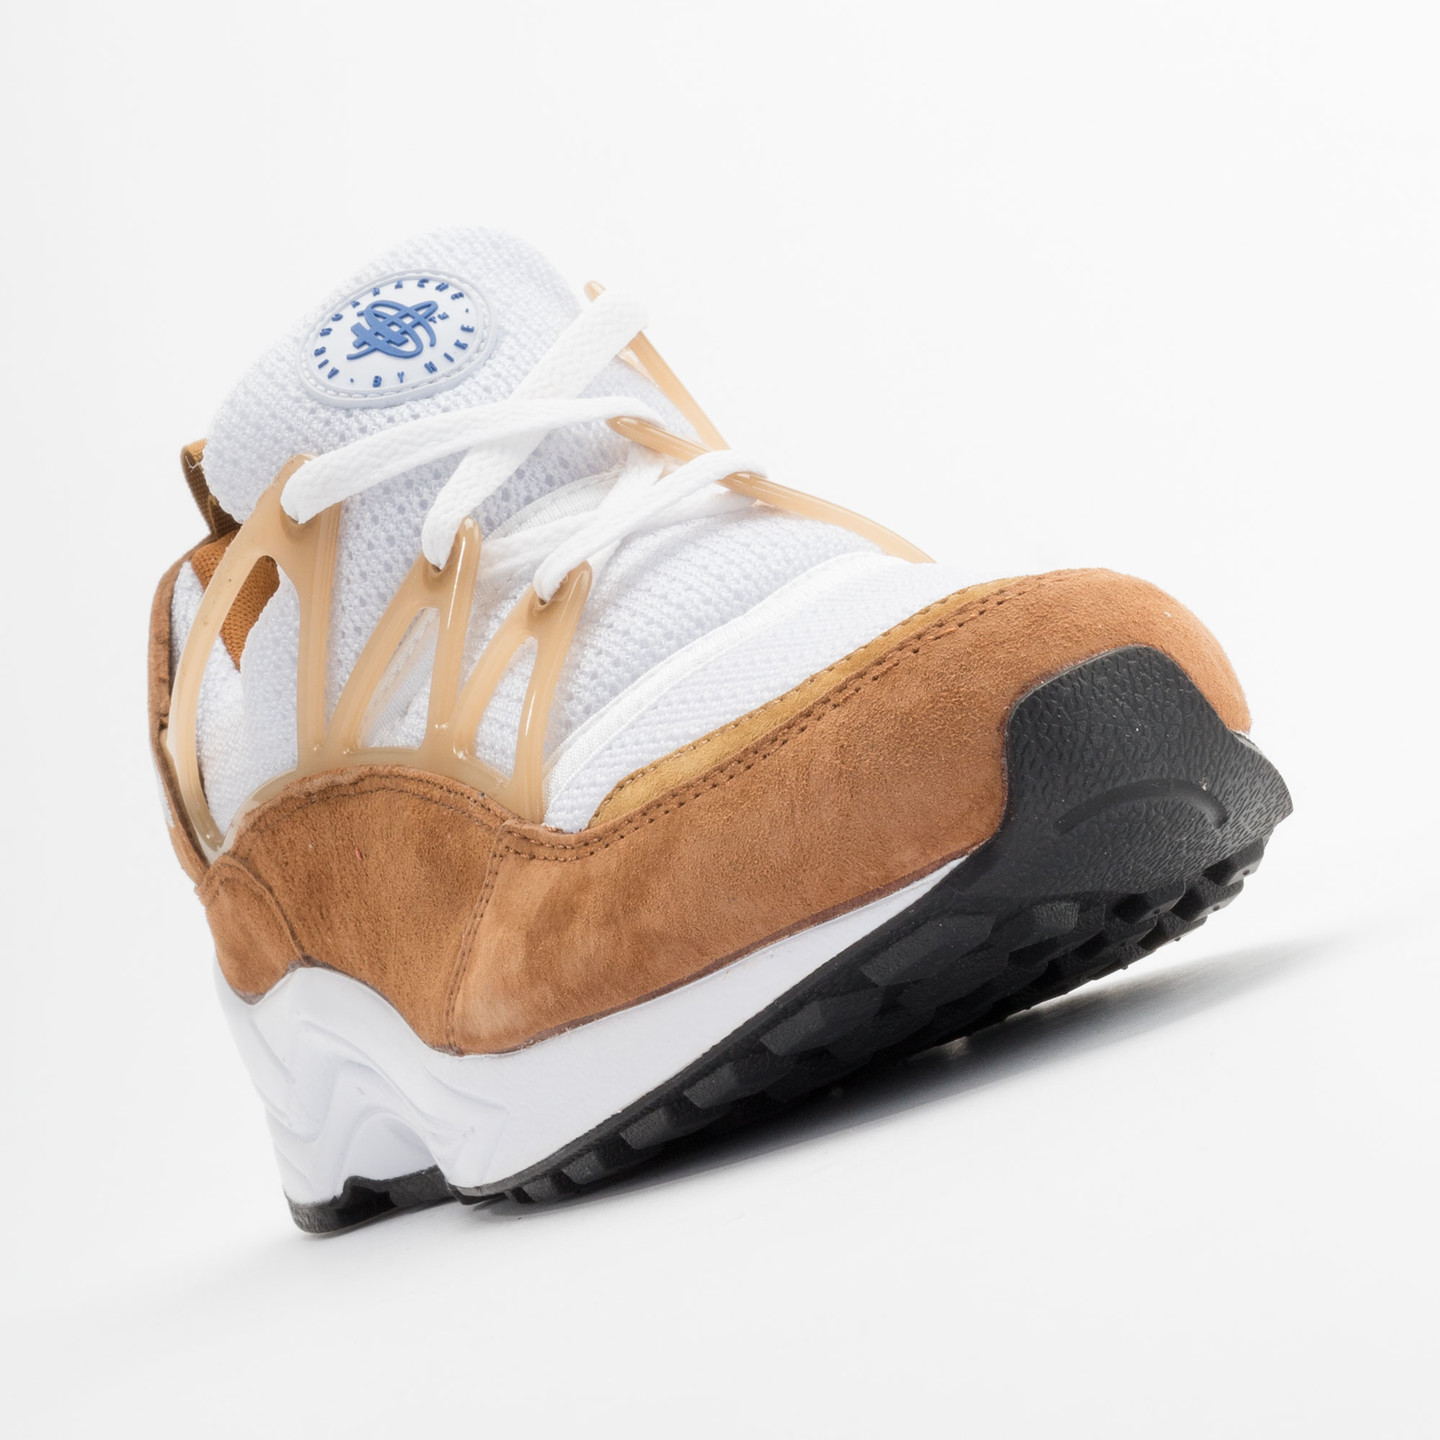 Nike Air Huarache Light Dark Curry / White-Wheat 306127-717-47.5